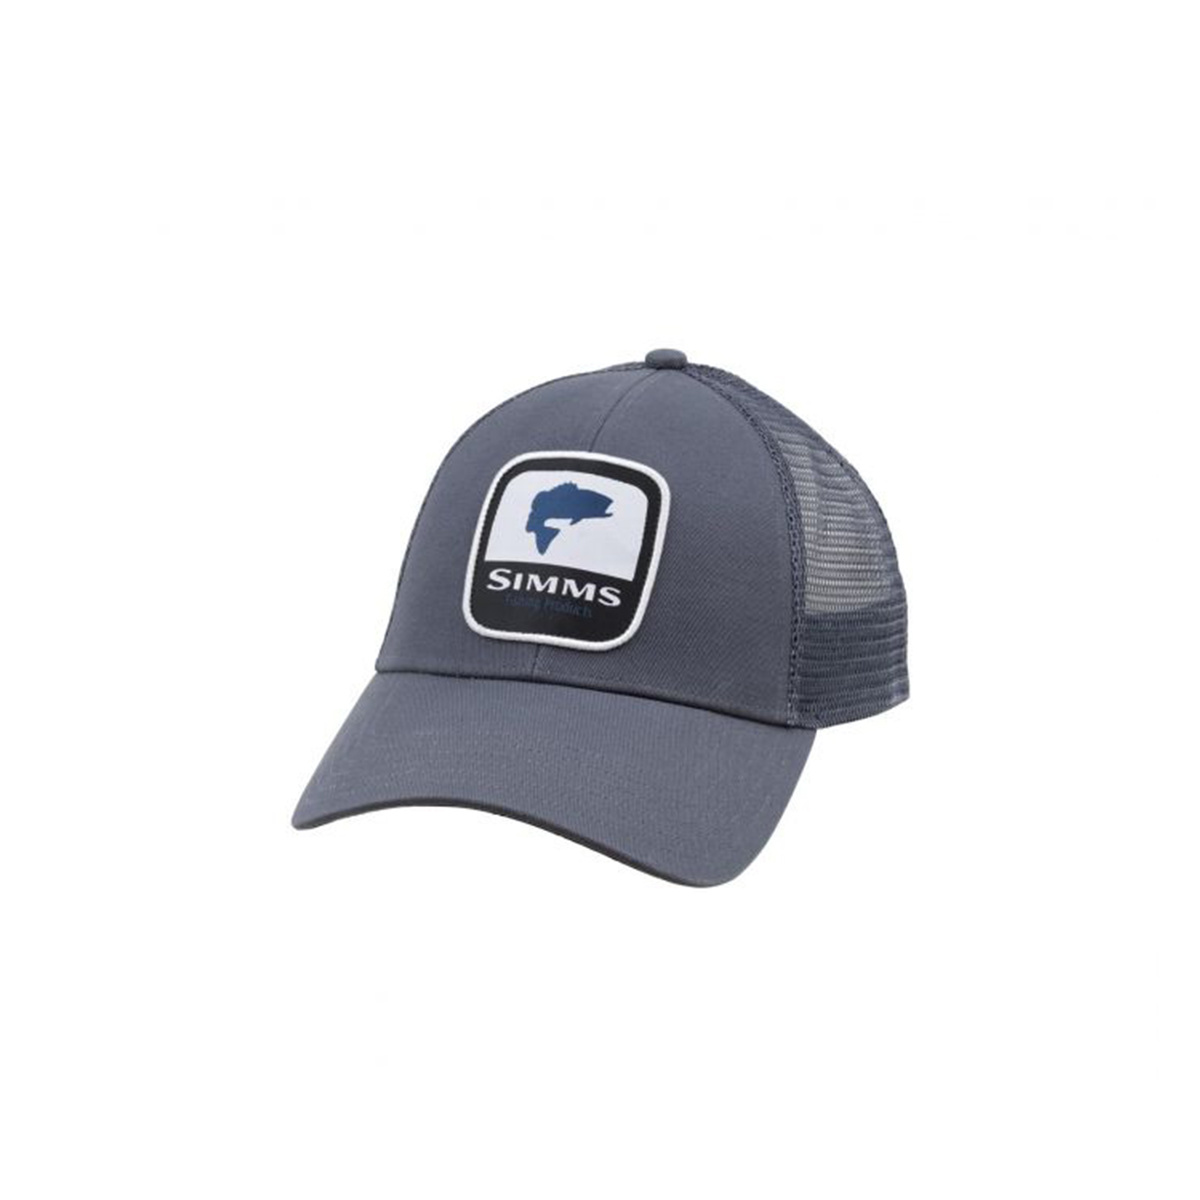 a7c8b9dfe2e74 Simms Clothing Bass Patch Trucker - Gearhead Outfitters